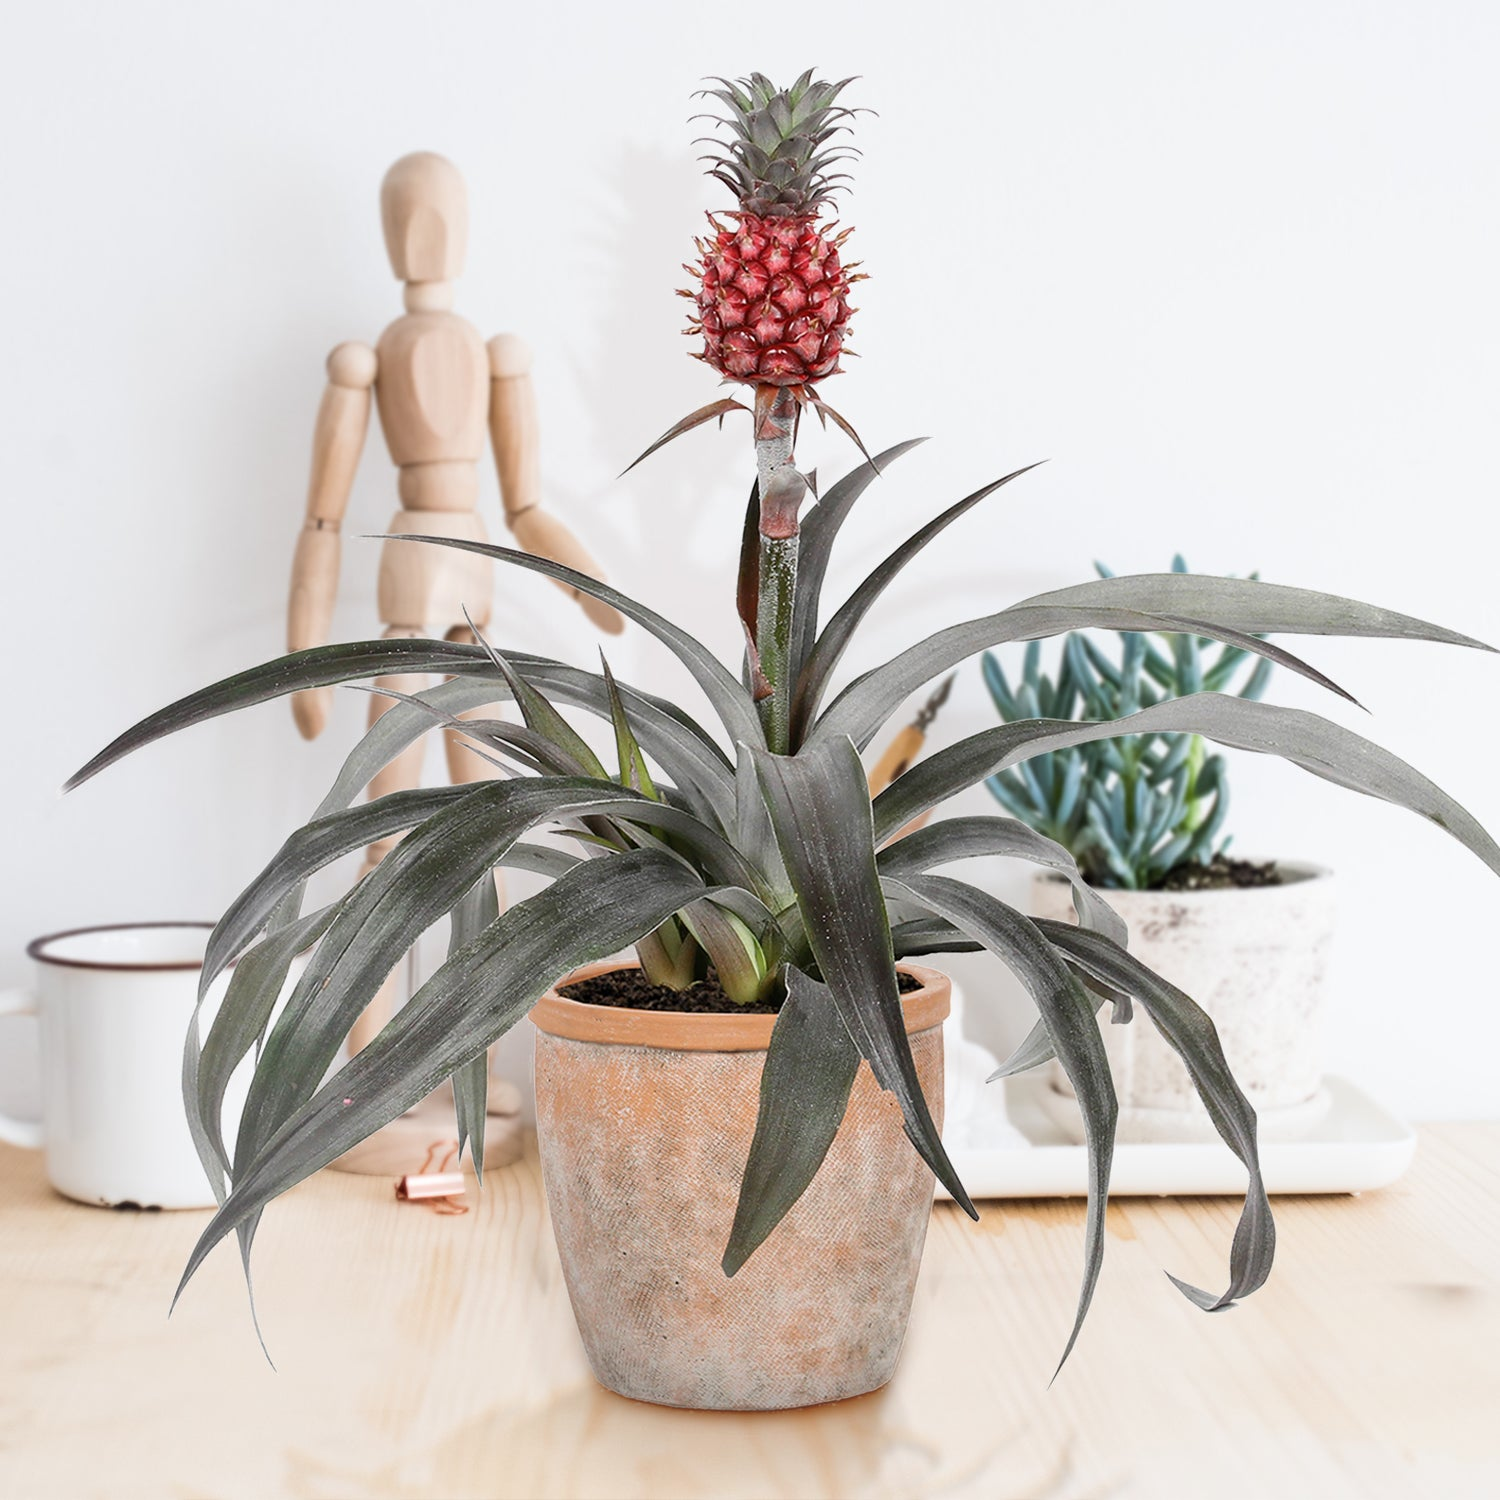 "Choice of Green - Bromelia Ananasplant Pacifico + pot ""Terracotta"" - Hoogte 38 cm - Diameter pot 13 cm"